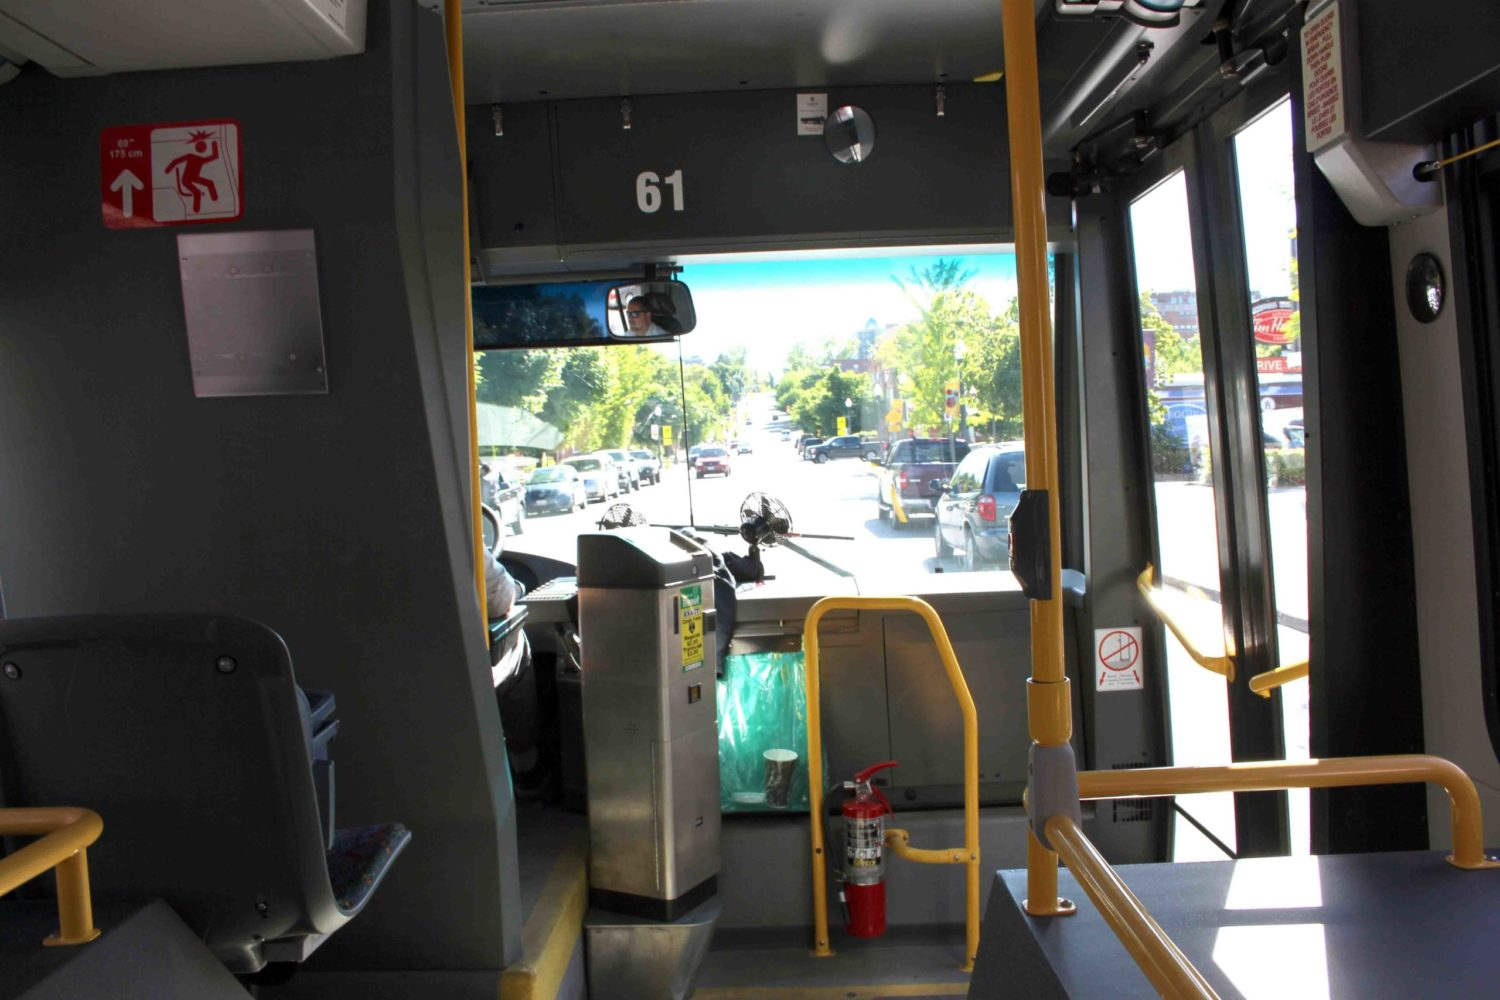 The environmental benefits of pubic transit include reduced air pollution and traffic congestion from fewer vehicles on the road.